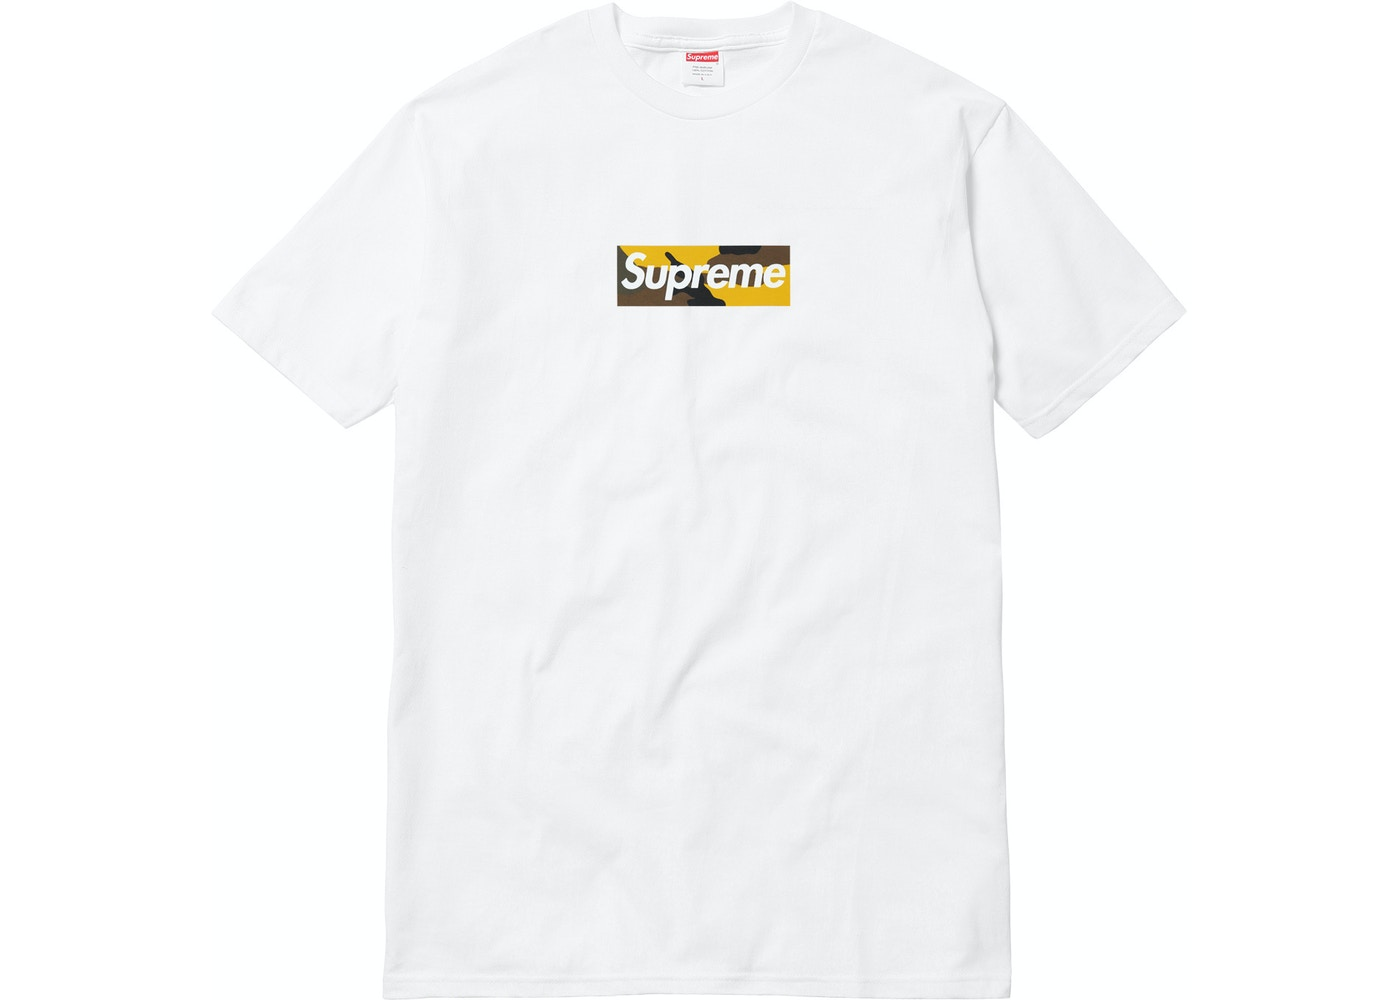 4b567c40d4cc Supreme Brooklyn Box Logo Tee White - FW17